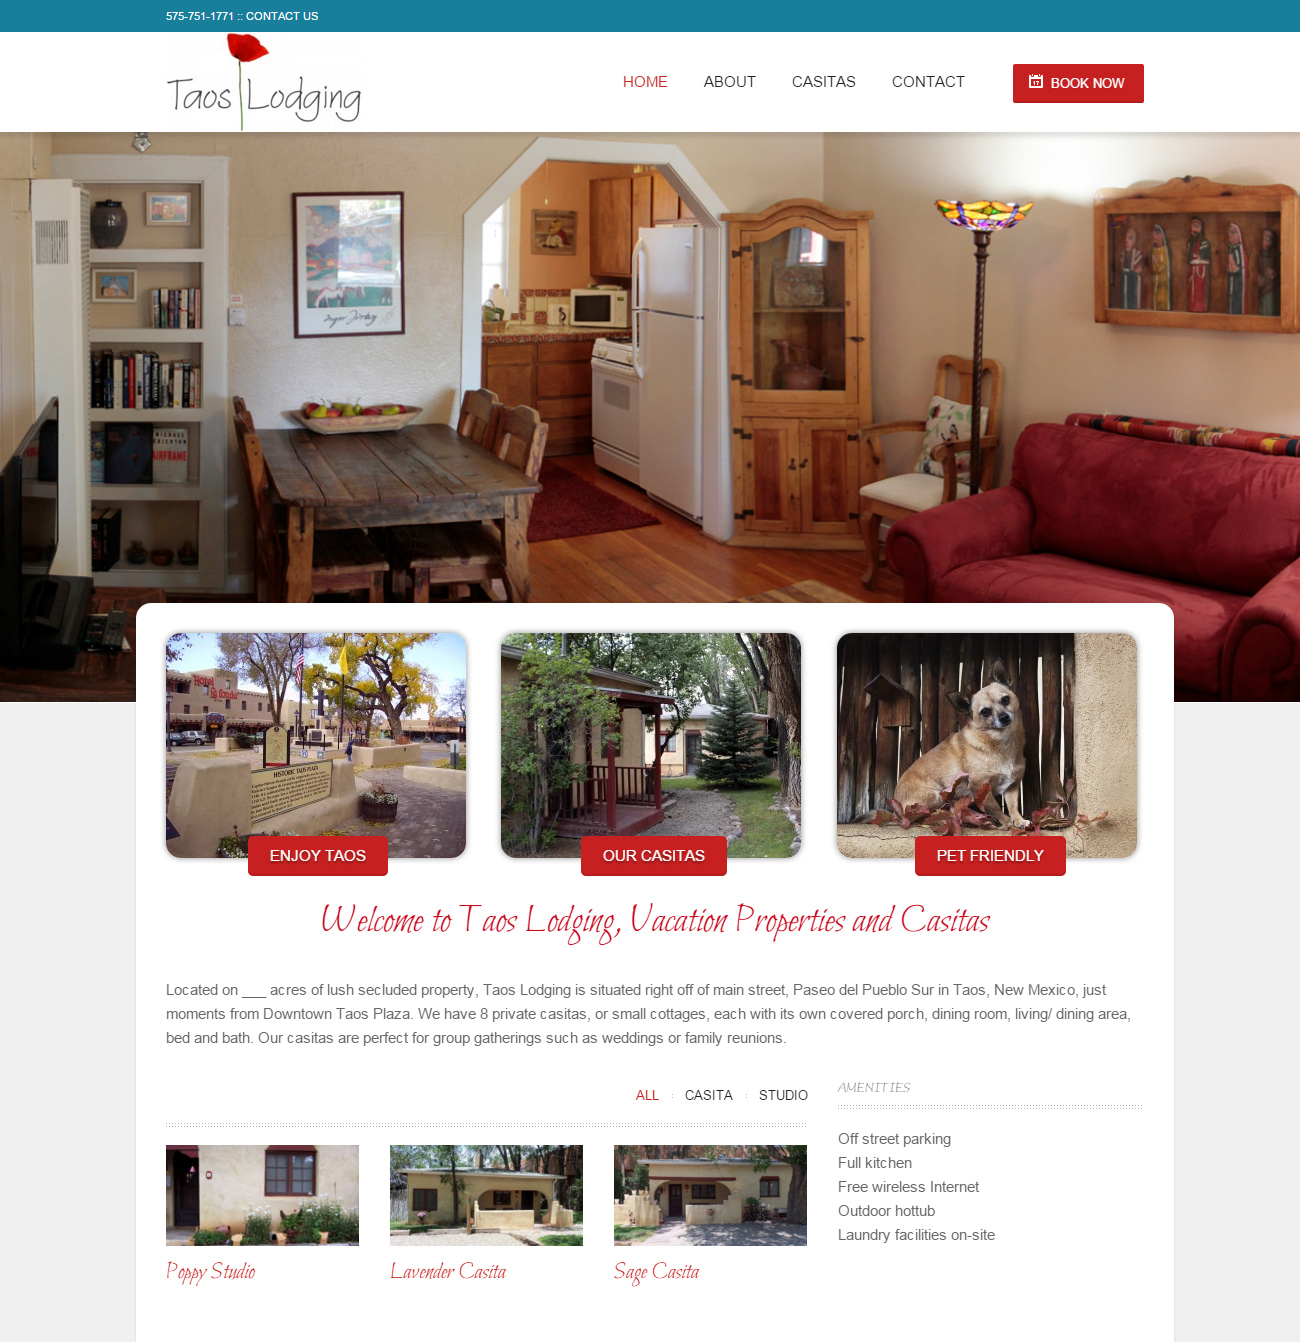 Taos Lodging Website